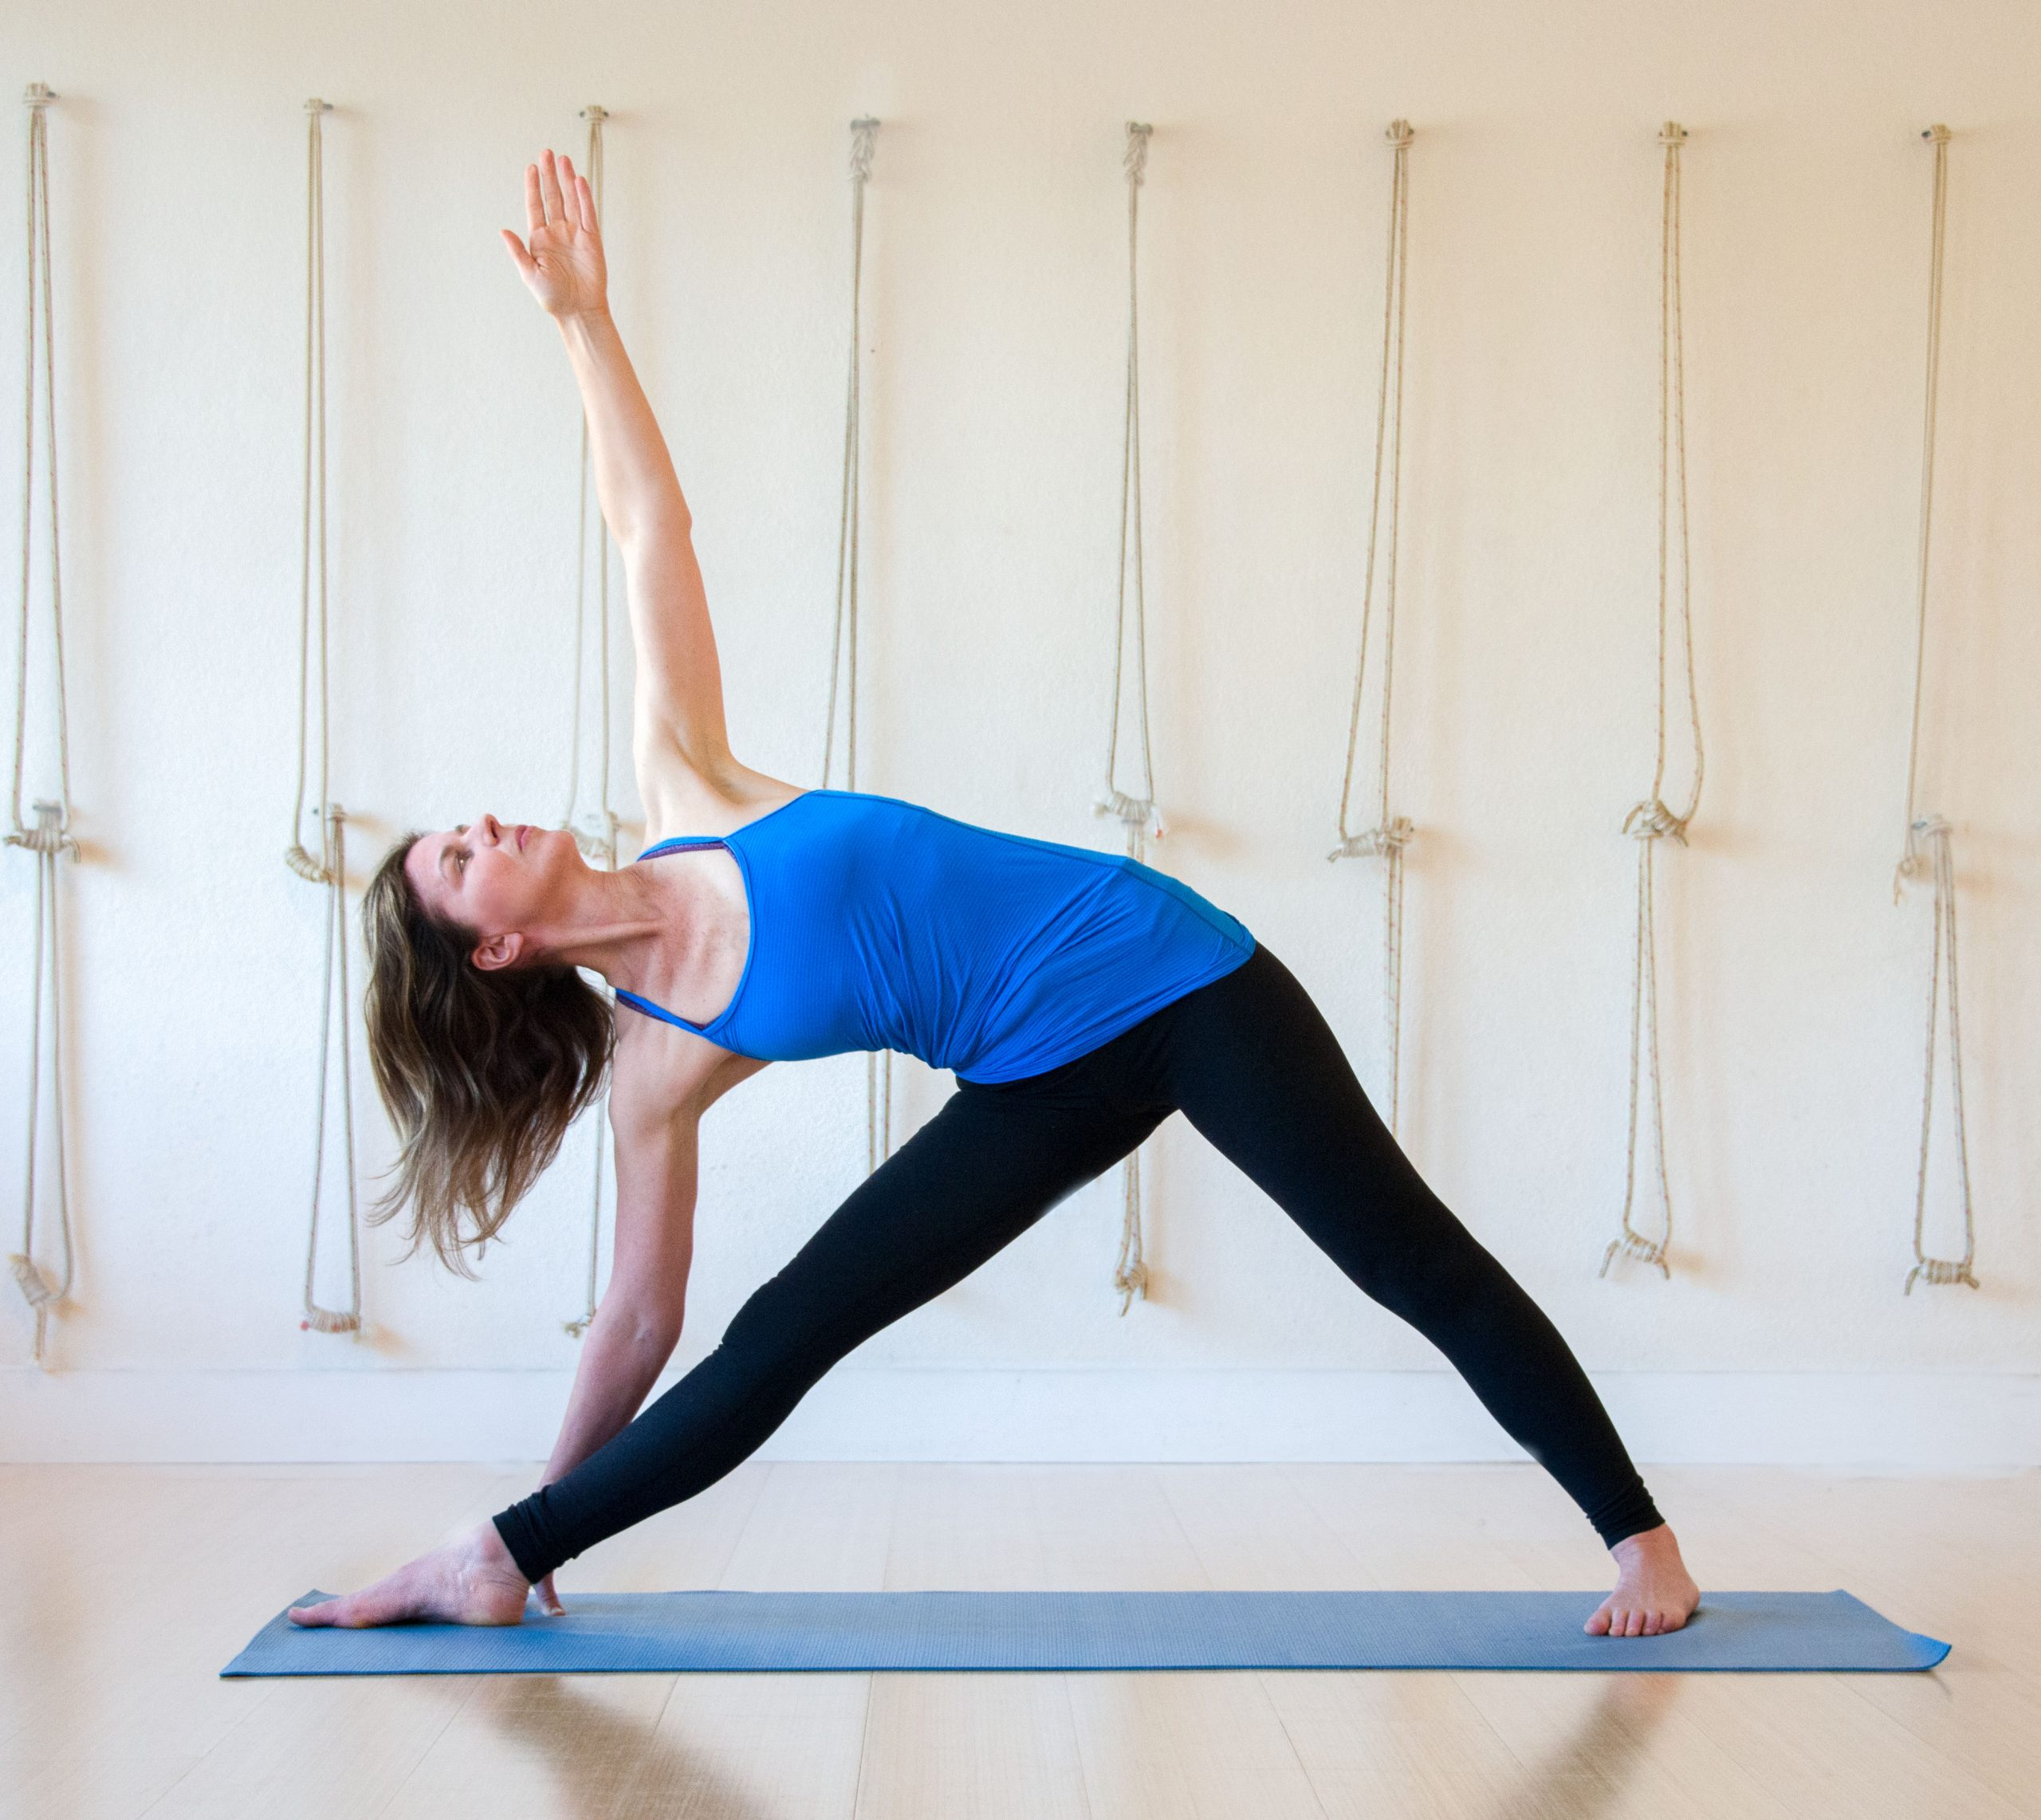 Contact us - Yoga Center of Marin